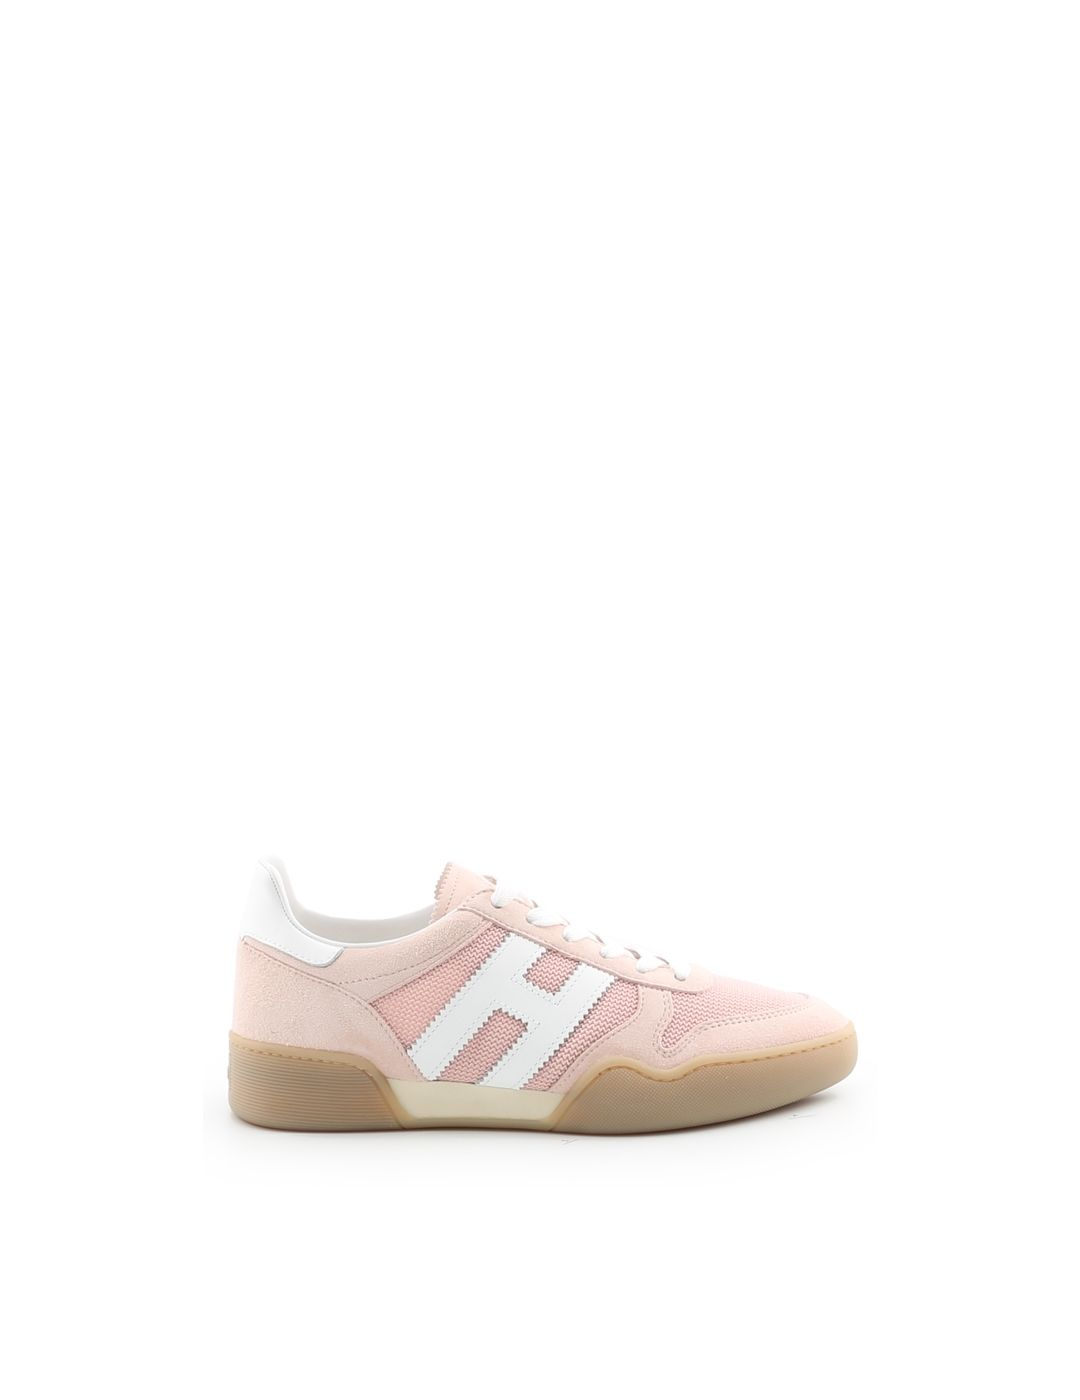 Hogan Women's Shoes Suede Trainers Sneakers H357 In Pink